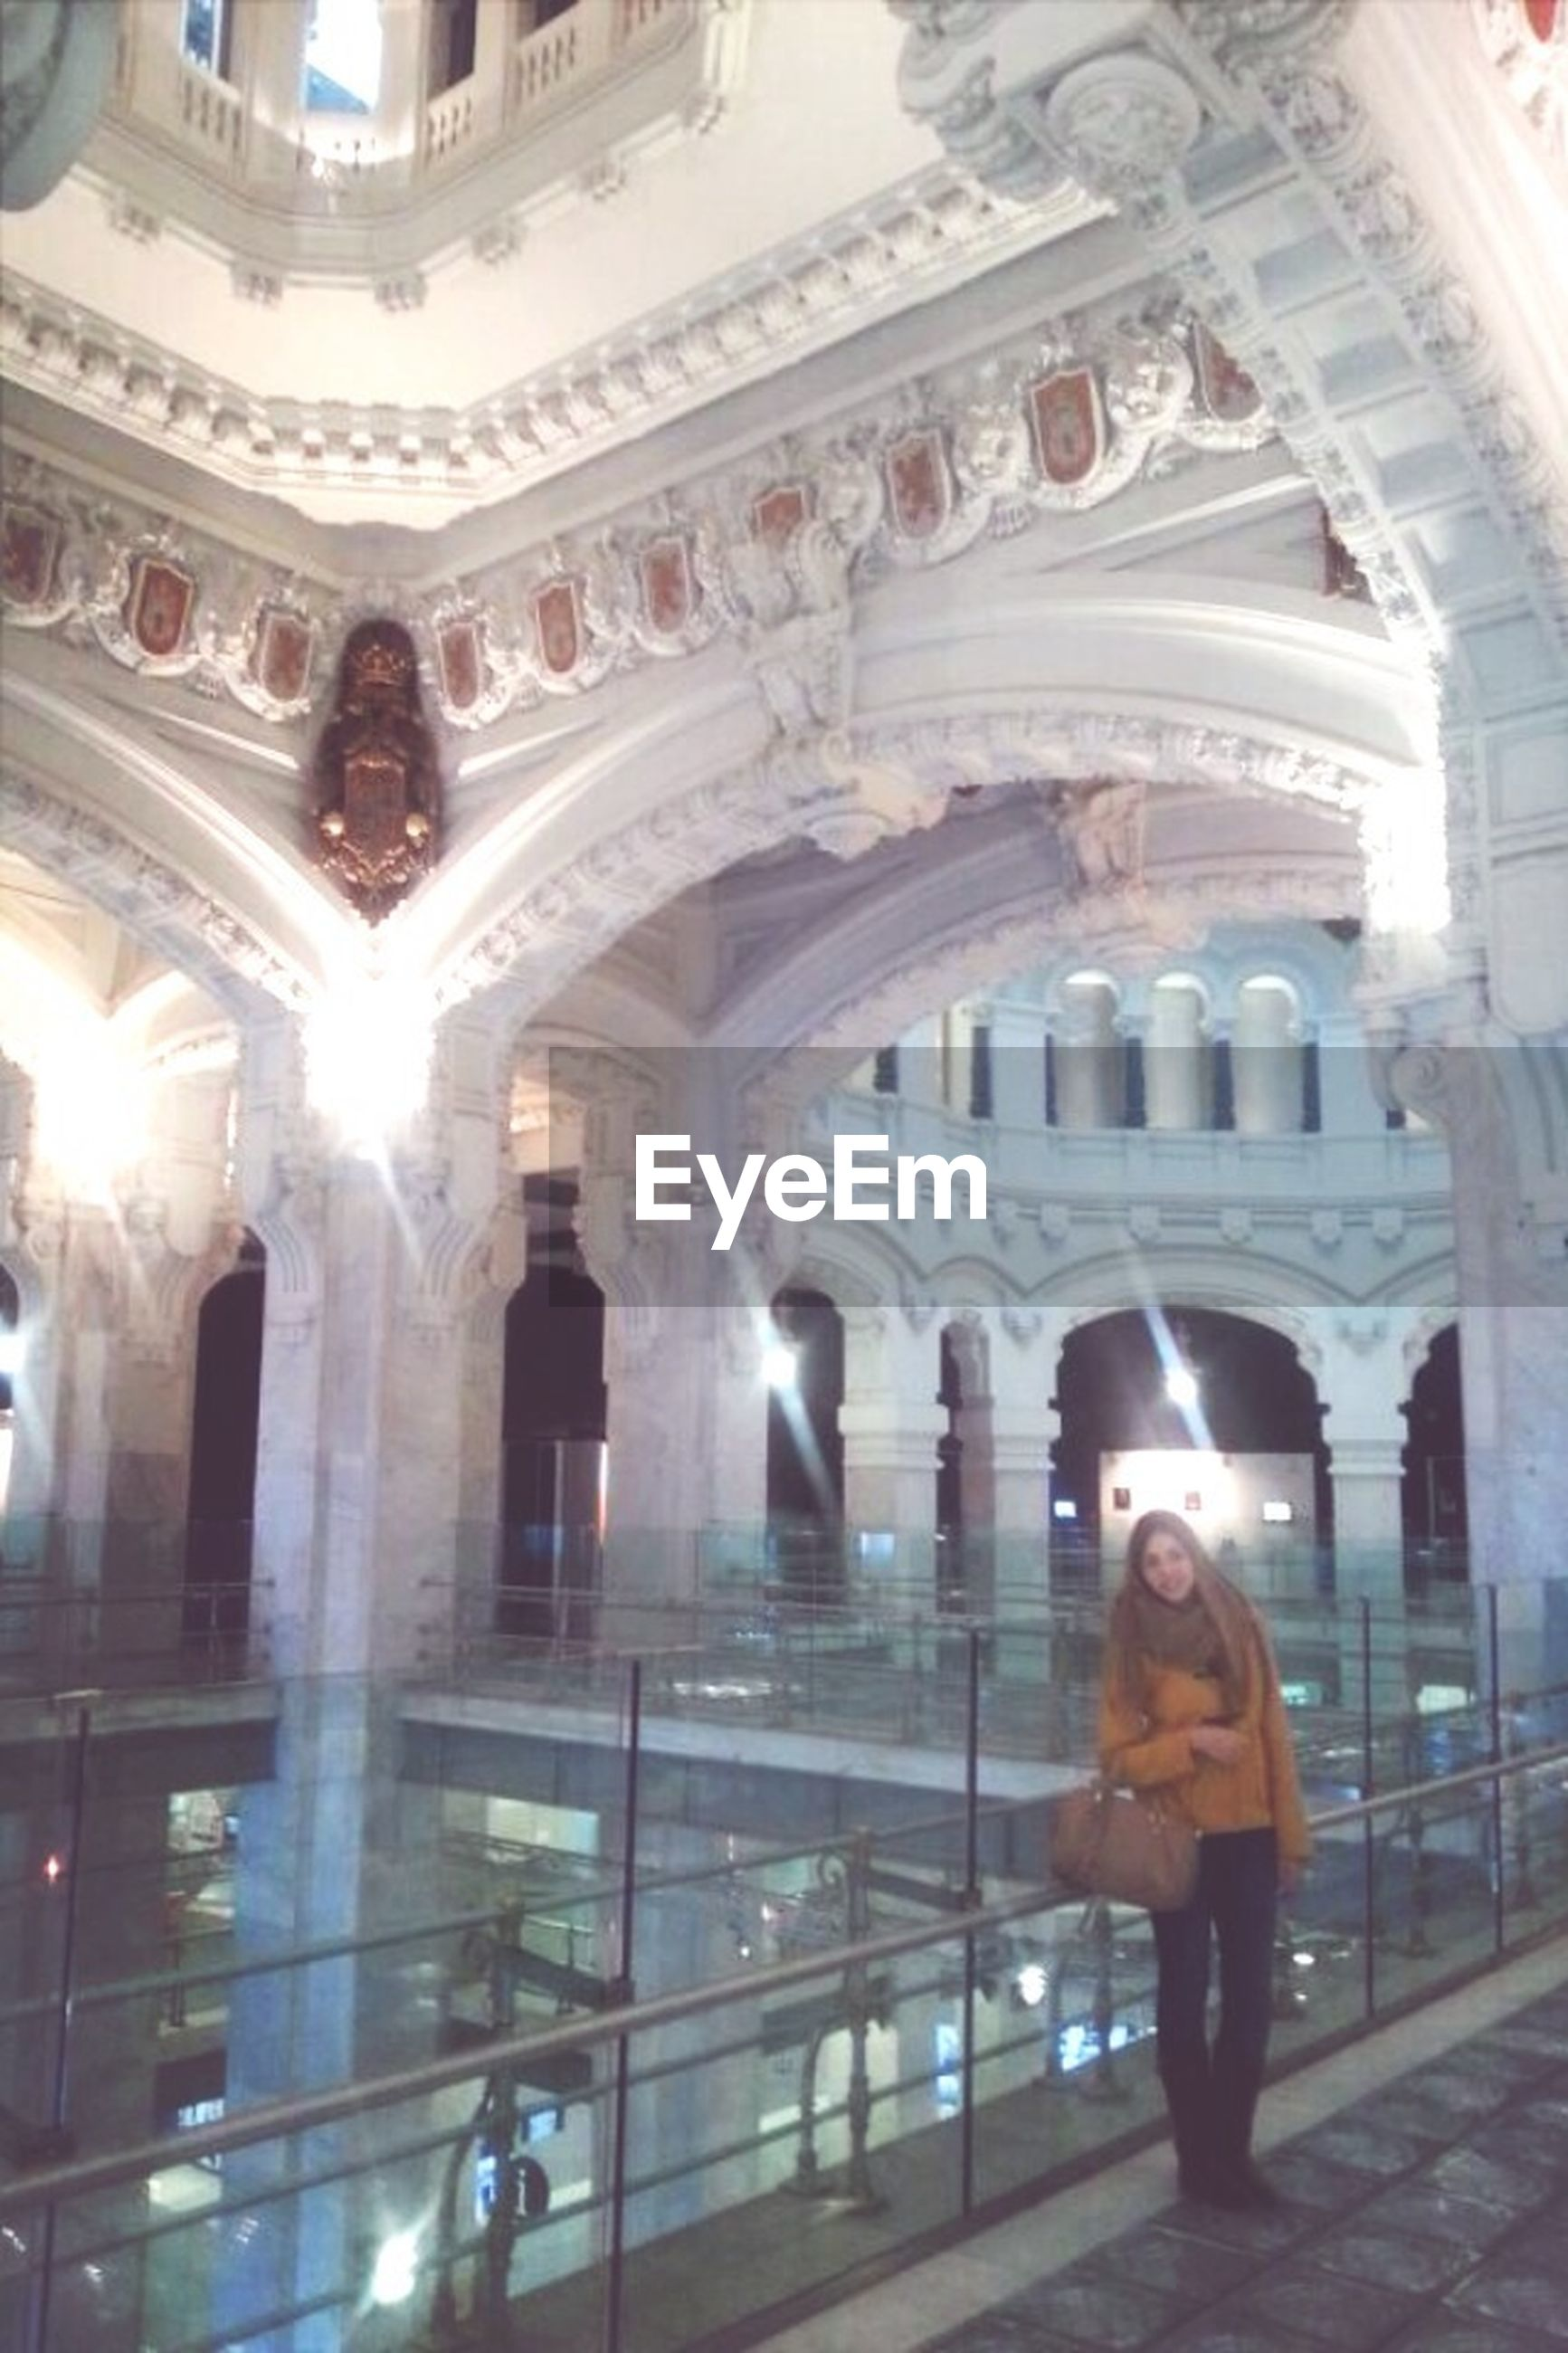 indoors, architecture, built structure, arch, place of worship, religion, lifestyles, church, spirituality, leisure activity, famous place, travel, travel destinations, ceiling, tourism, full length, men, low angle view